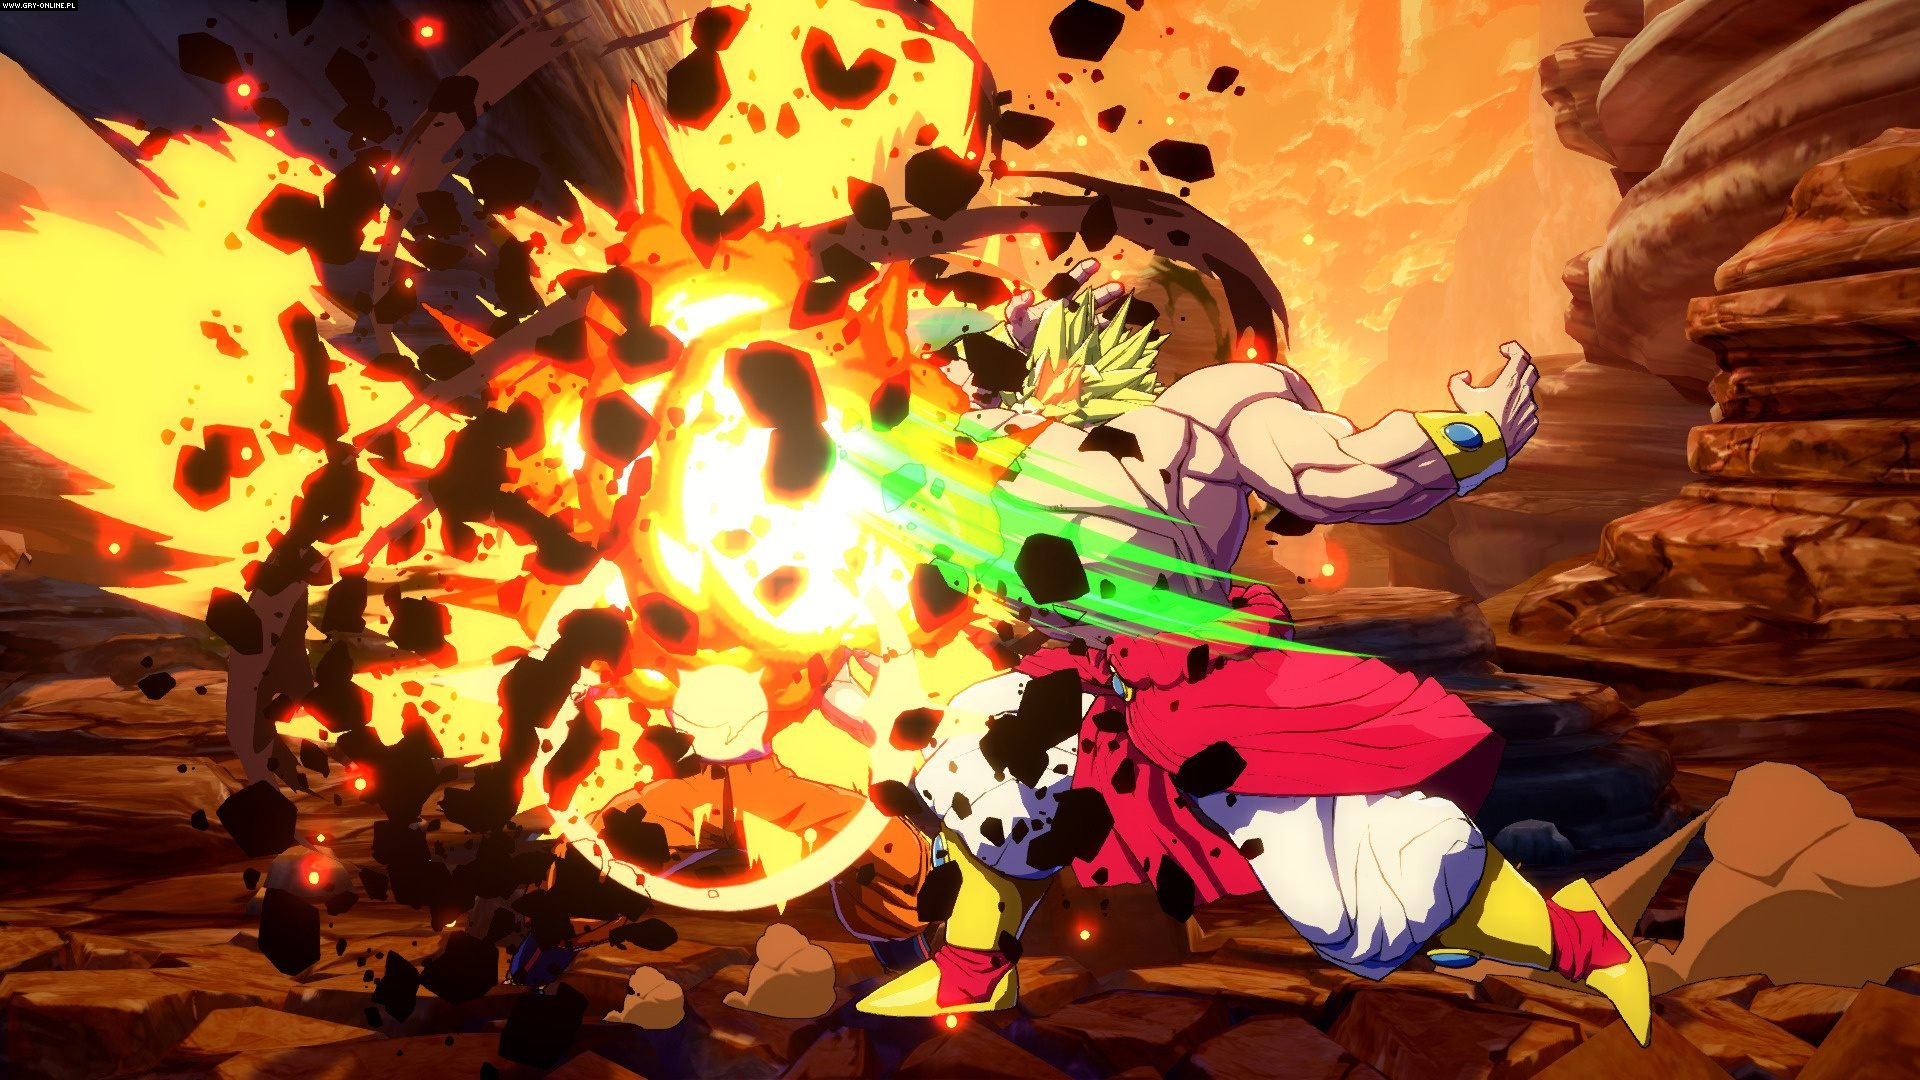 Dragon Ball FighterZ PC, PS4, XONE, Switch Gry Screen 70/230, Arc System Works, Bandai Namco Entertainment